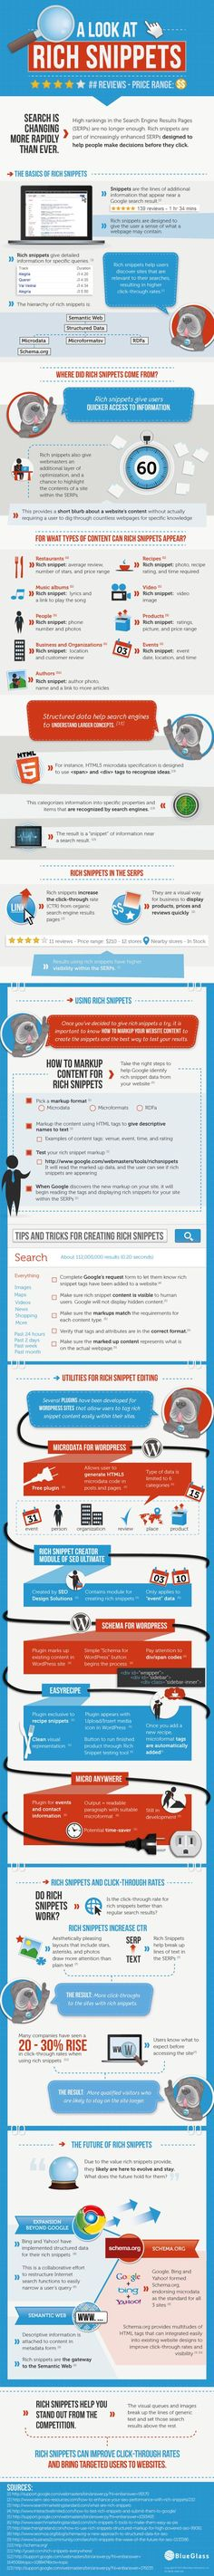 A Look at Rich Snippets